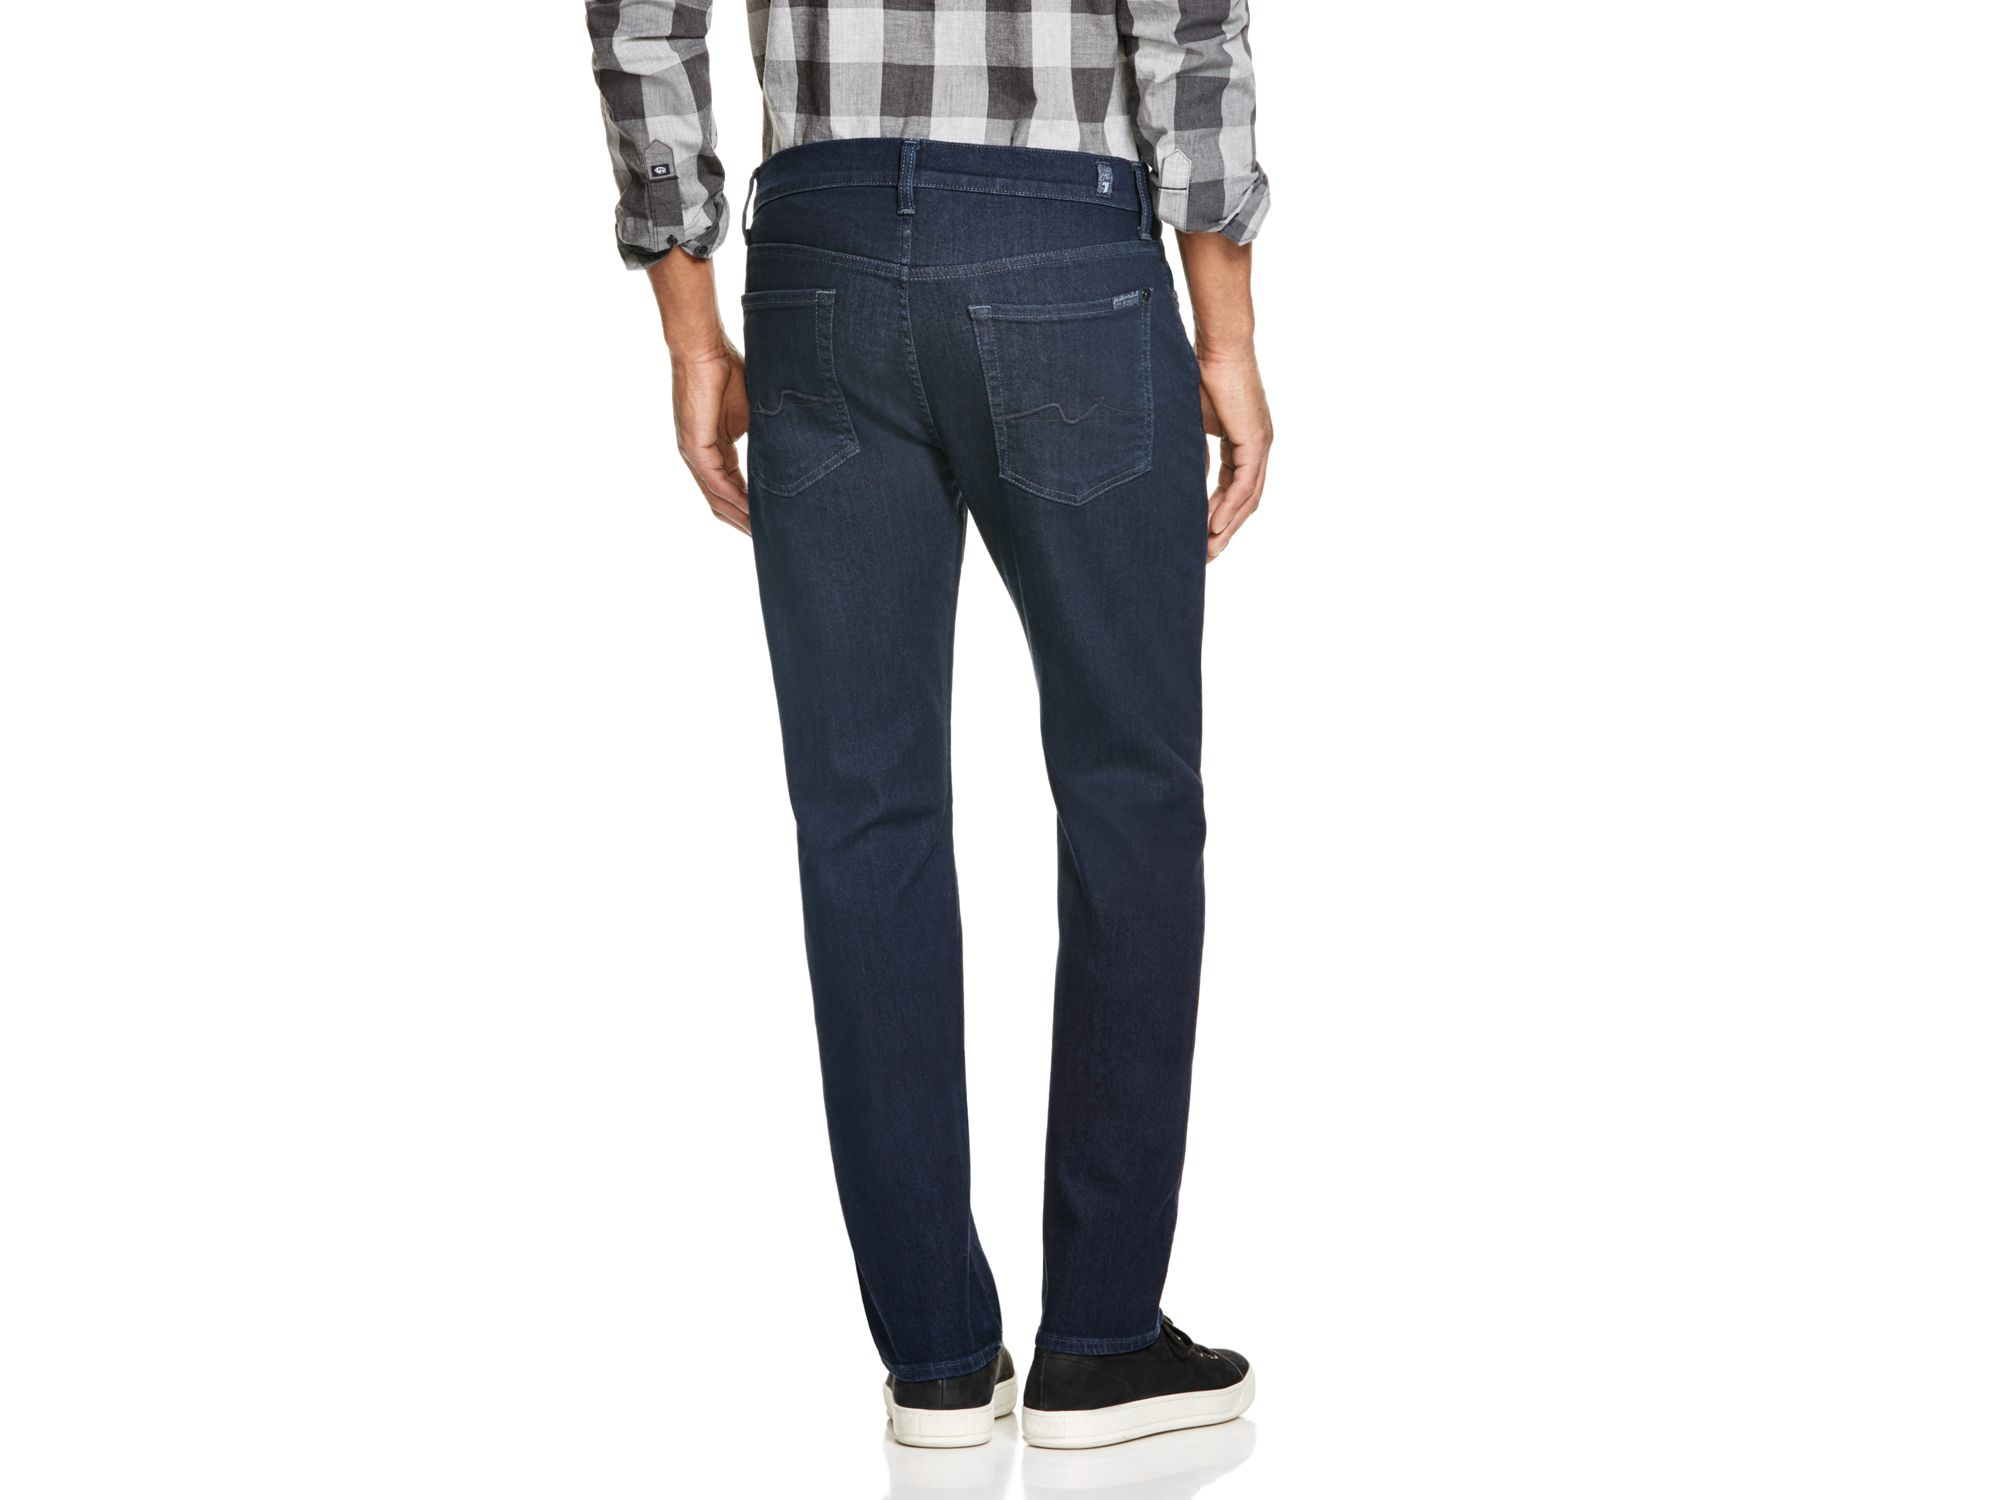 7 For All Mankind Denim Standard Classic Fit Straight Leg Jeans In Duncan Dark Blue - Compare At $198 for Men